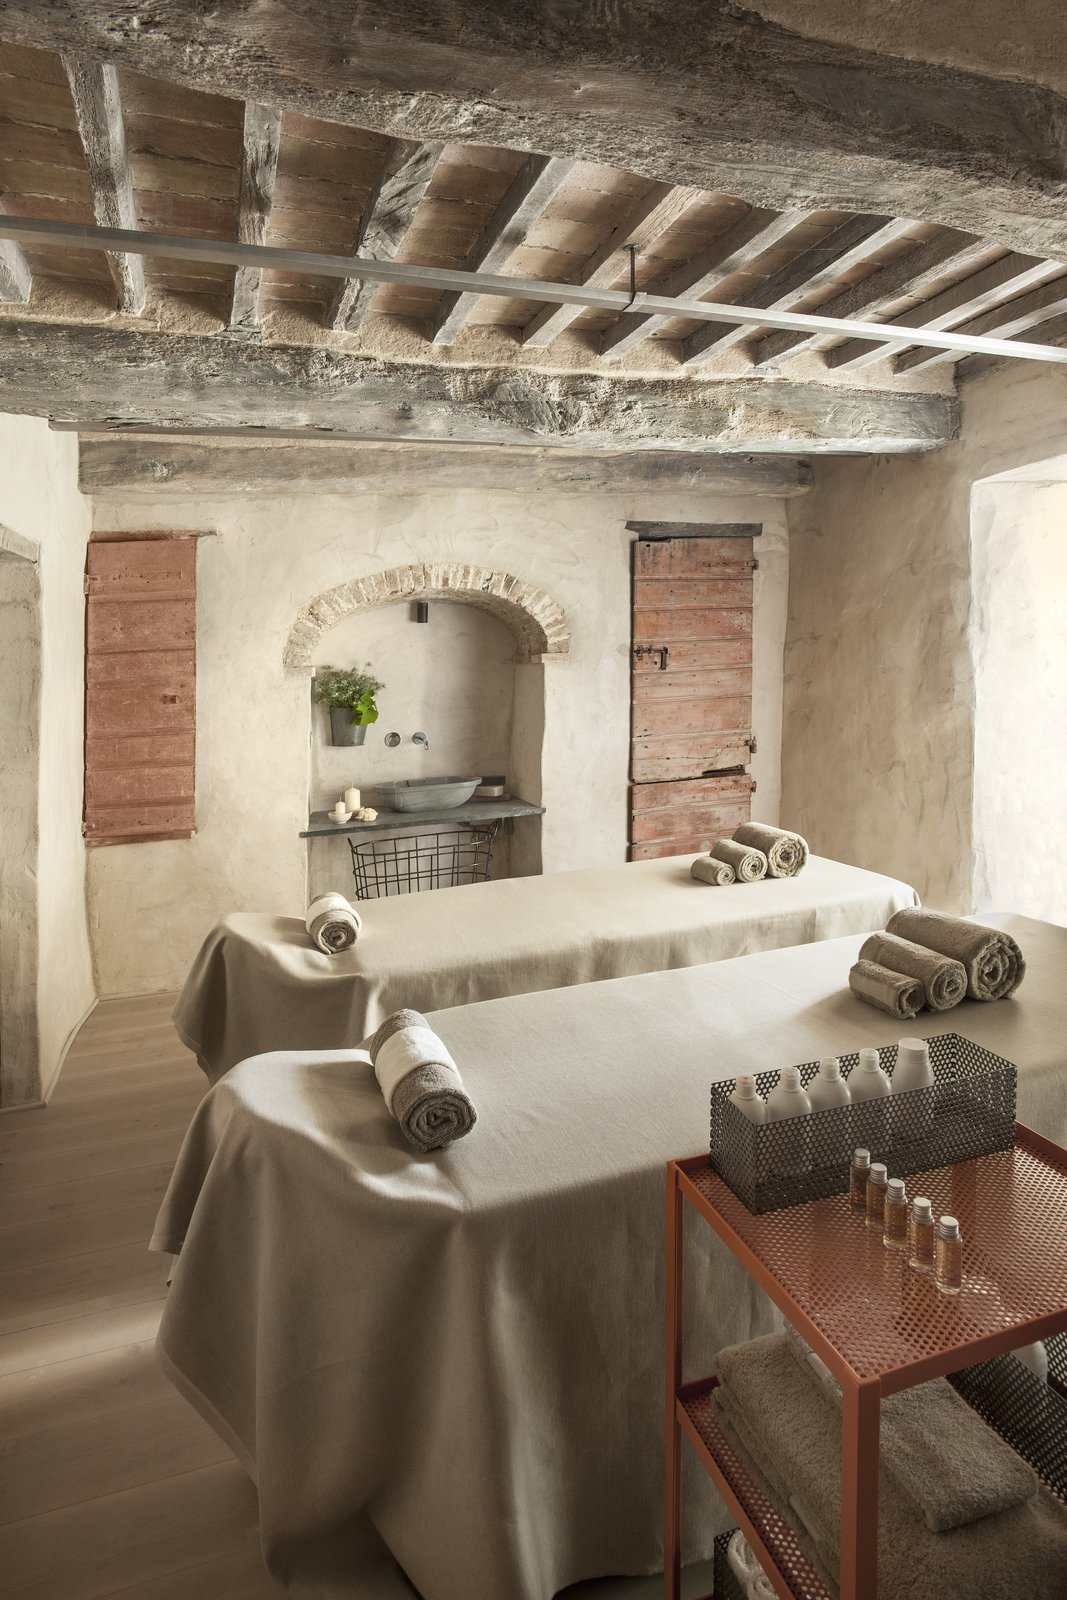 Photo 7 of 9 in A Tree-Filled Spa That Brings Warm Modernism to a 900-Year-Old Tuscan Village